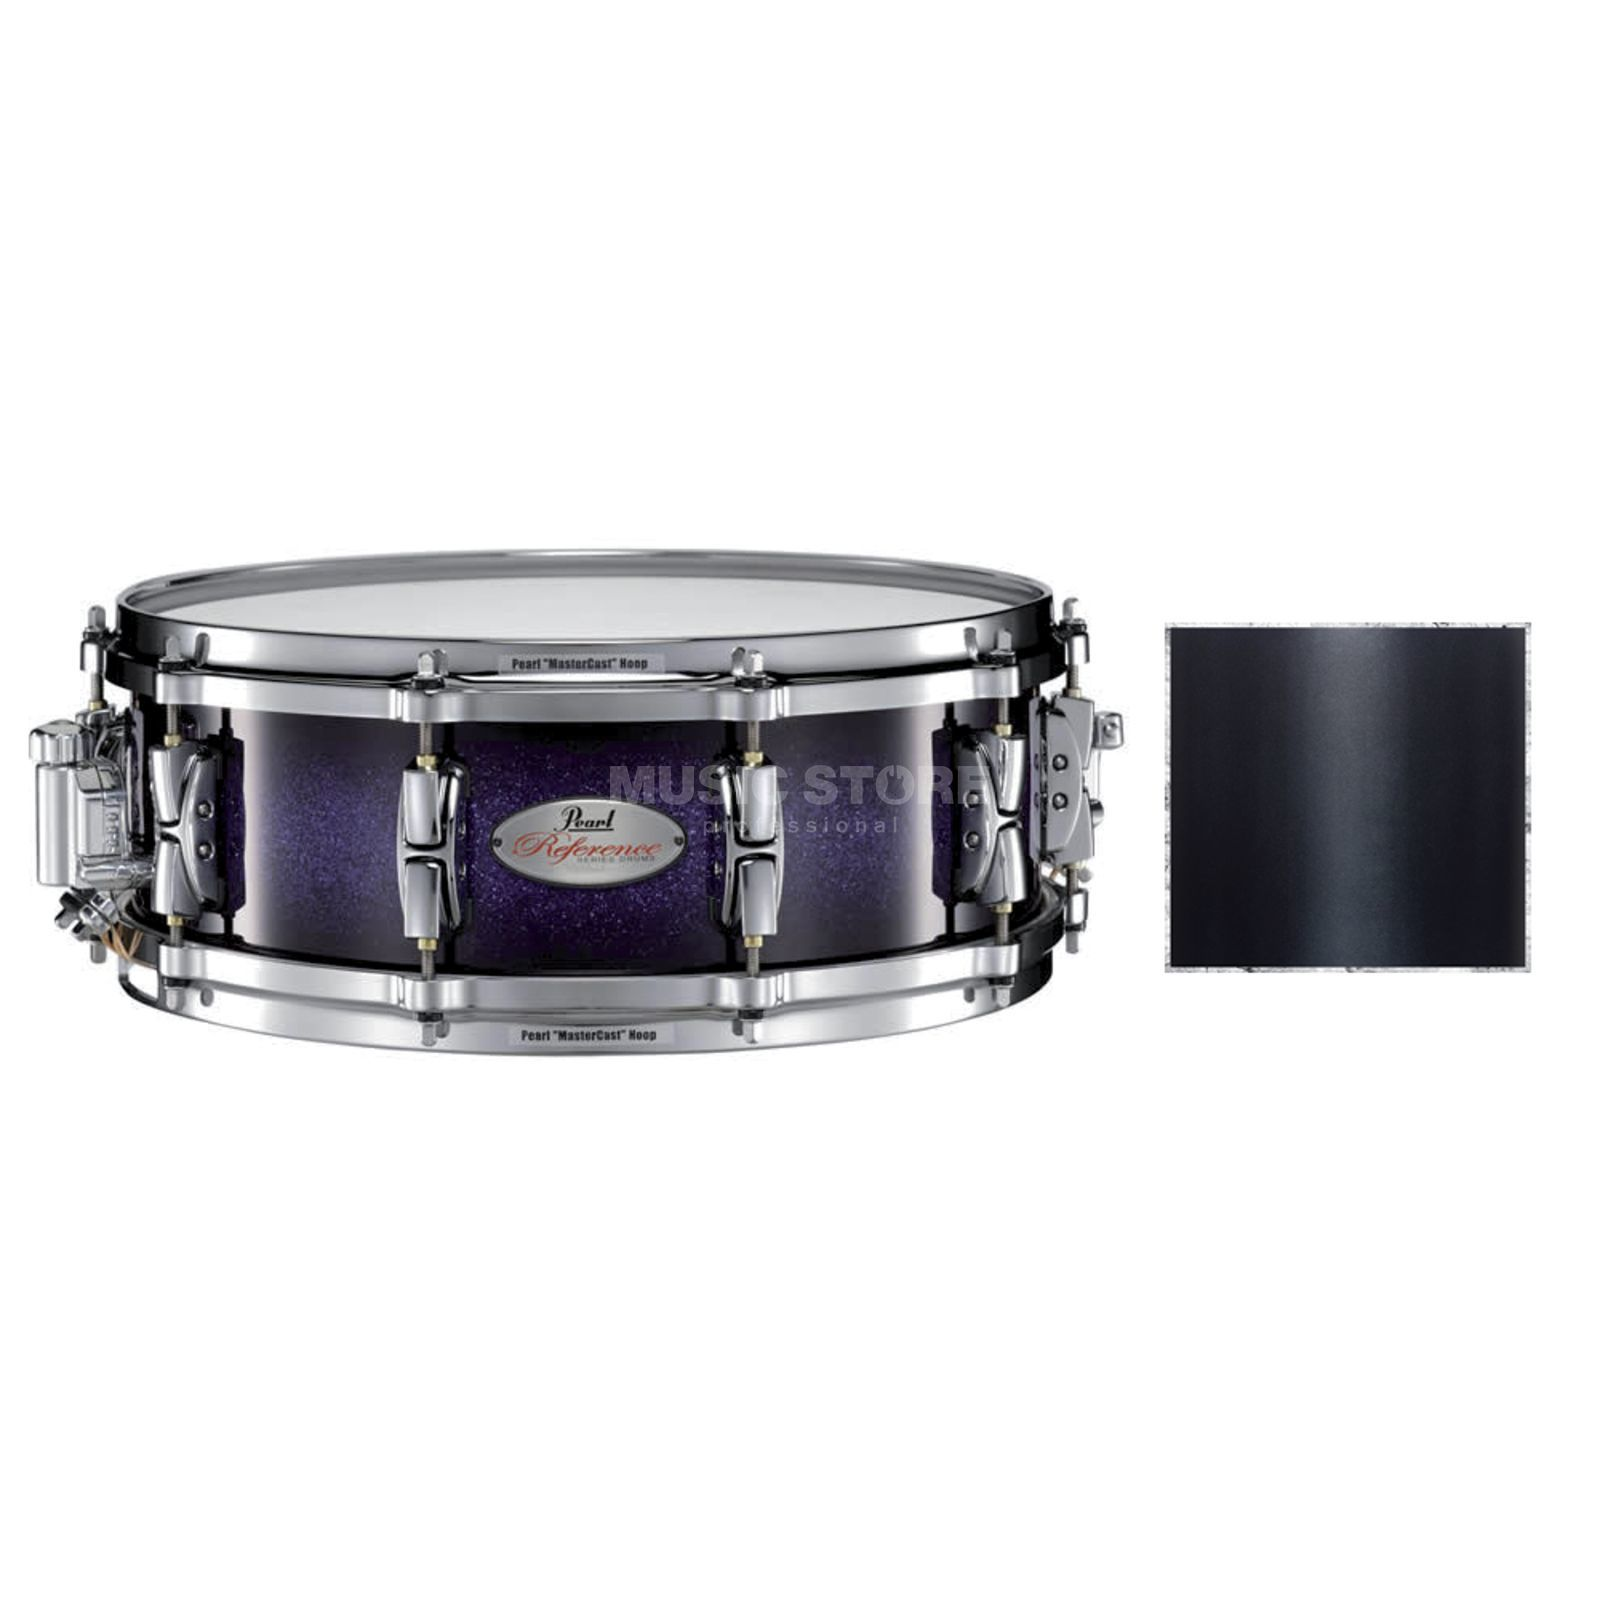 "Pearl RF1450S/C Reference Snare 14""x5"", Black Pearl #332 Produktbillede"